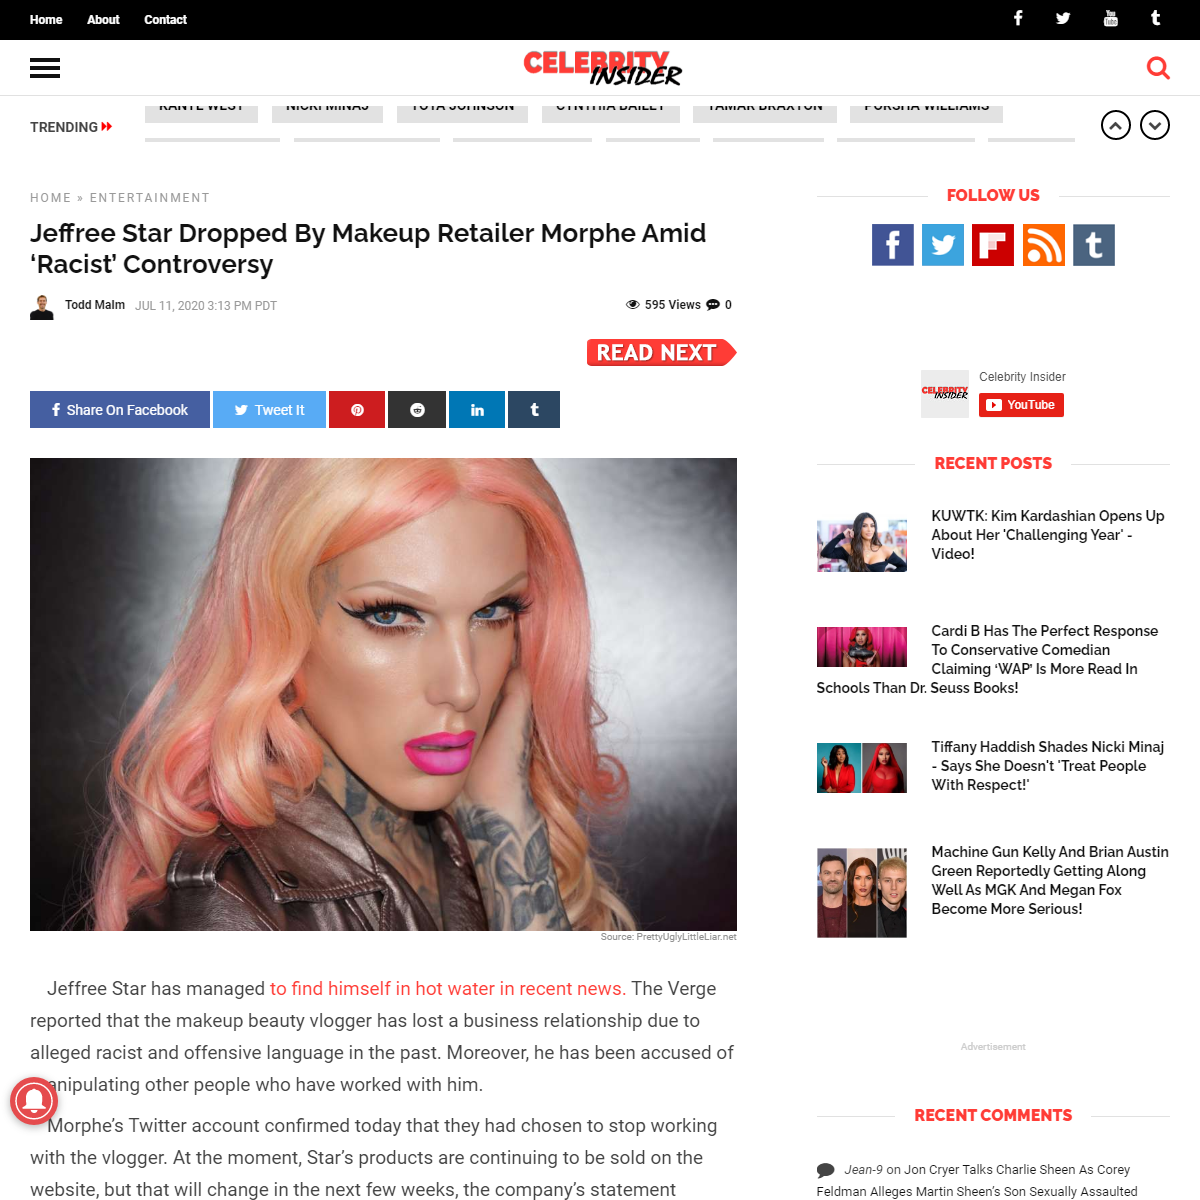 Jeffree Star Dropped By Makeup Retailer Morphe Amid 'Racist' Controversy - Celebrity Insider